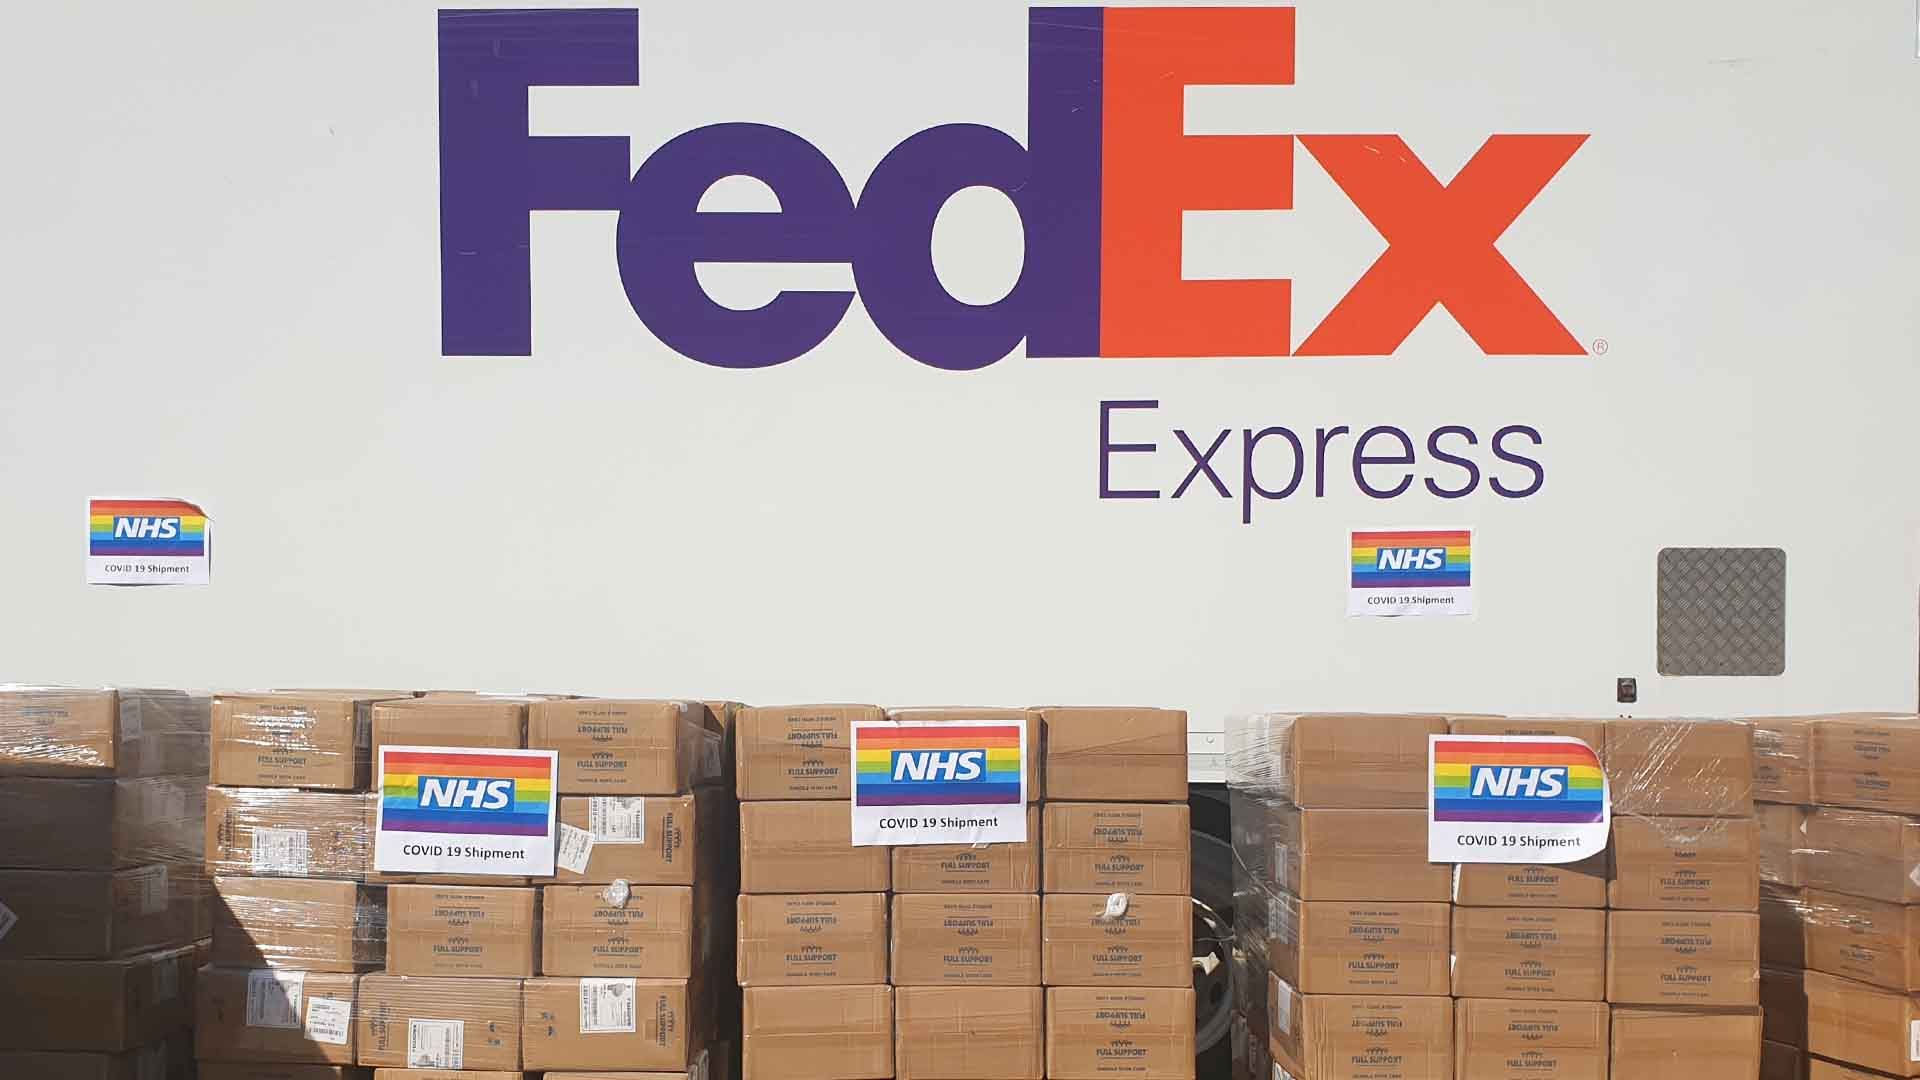 During the COVID-19 pandemic, FedEx is providing support to countries across the globe.